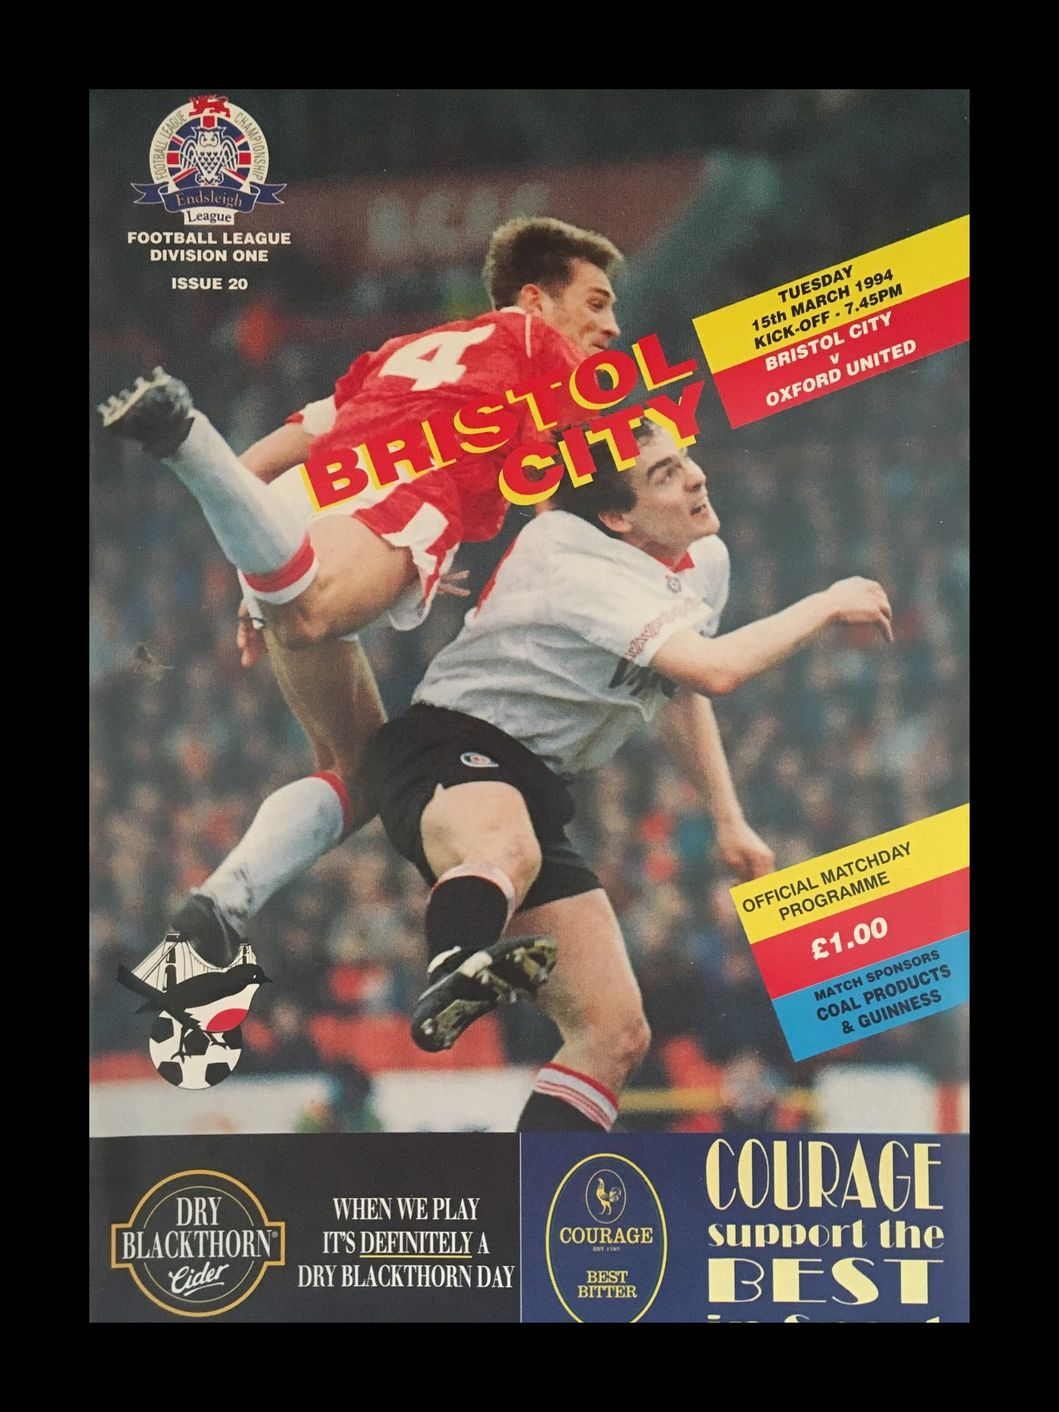 Bristol City v Oxford United 15-03-1994 Programme